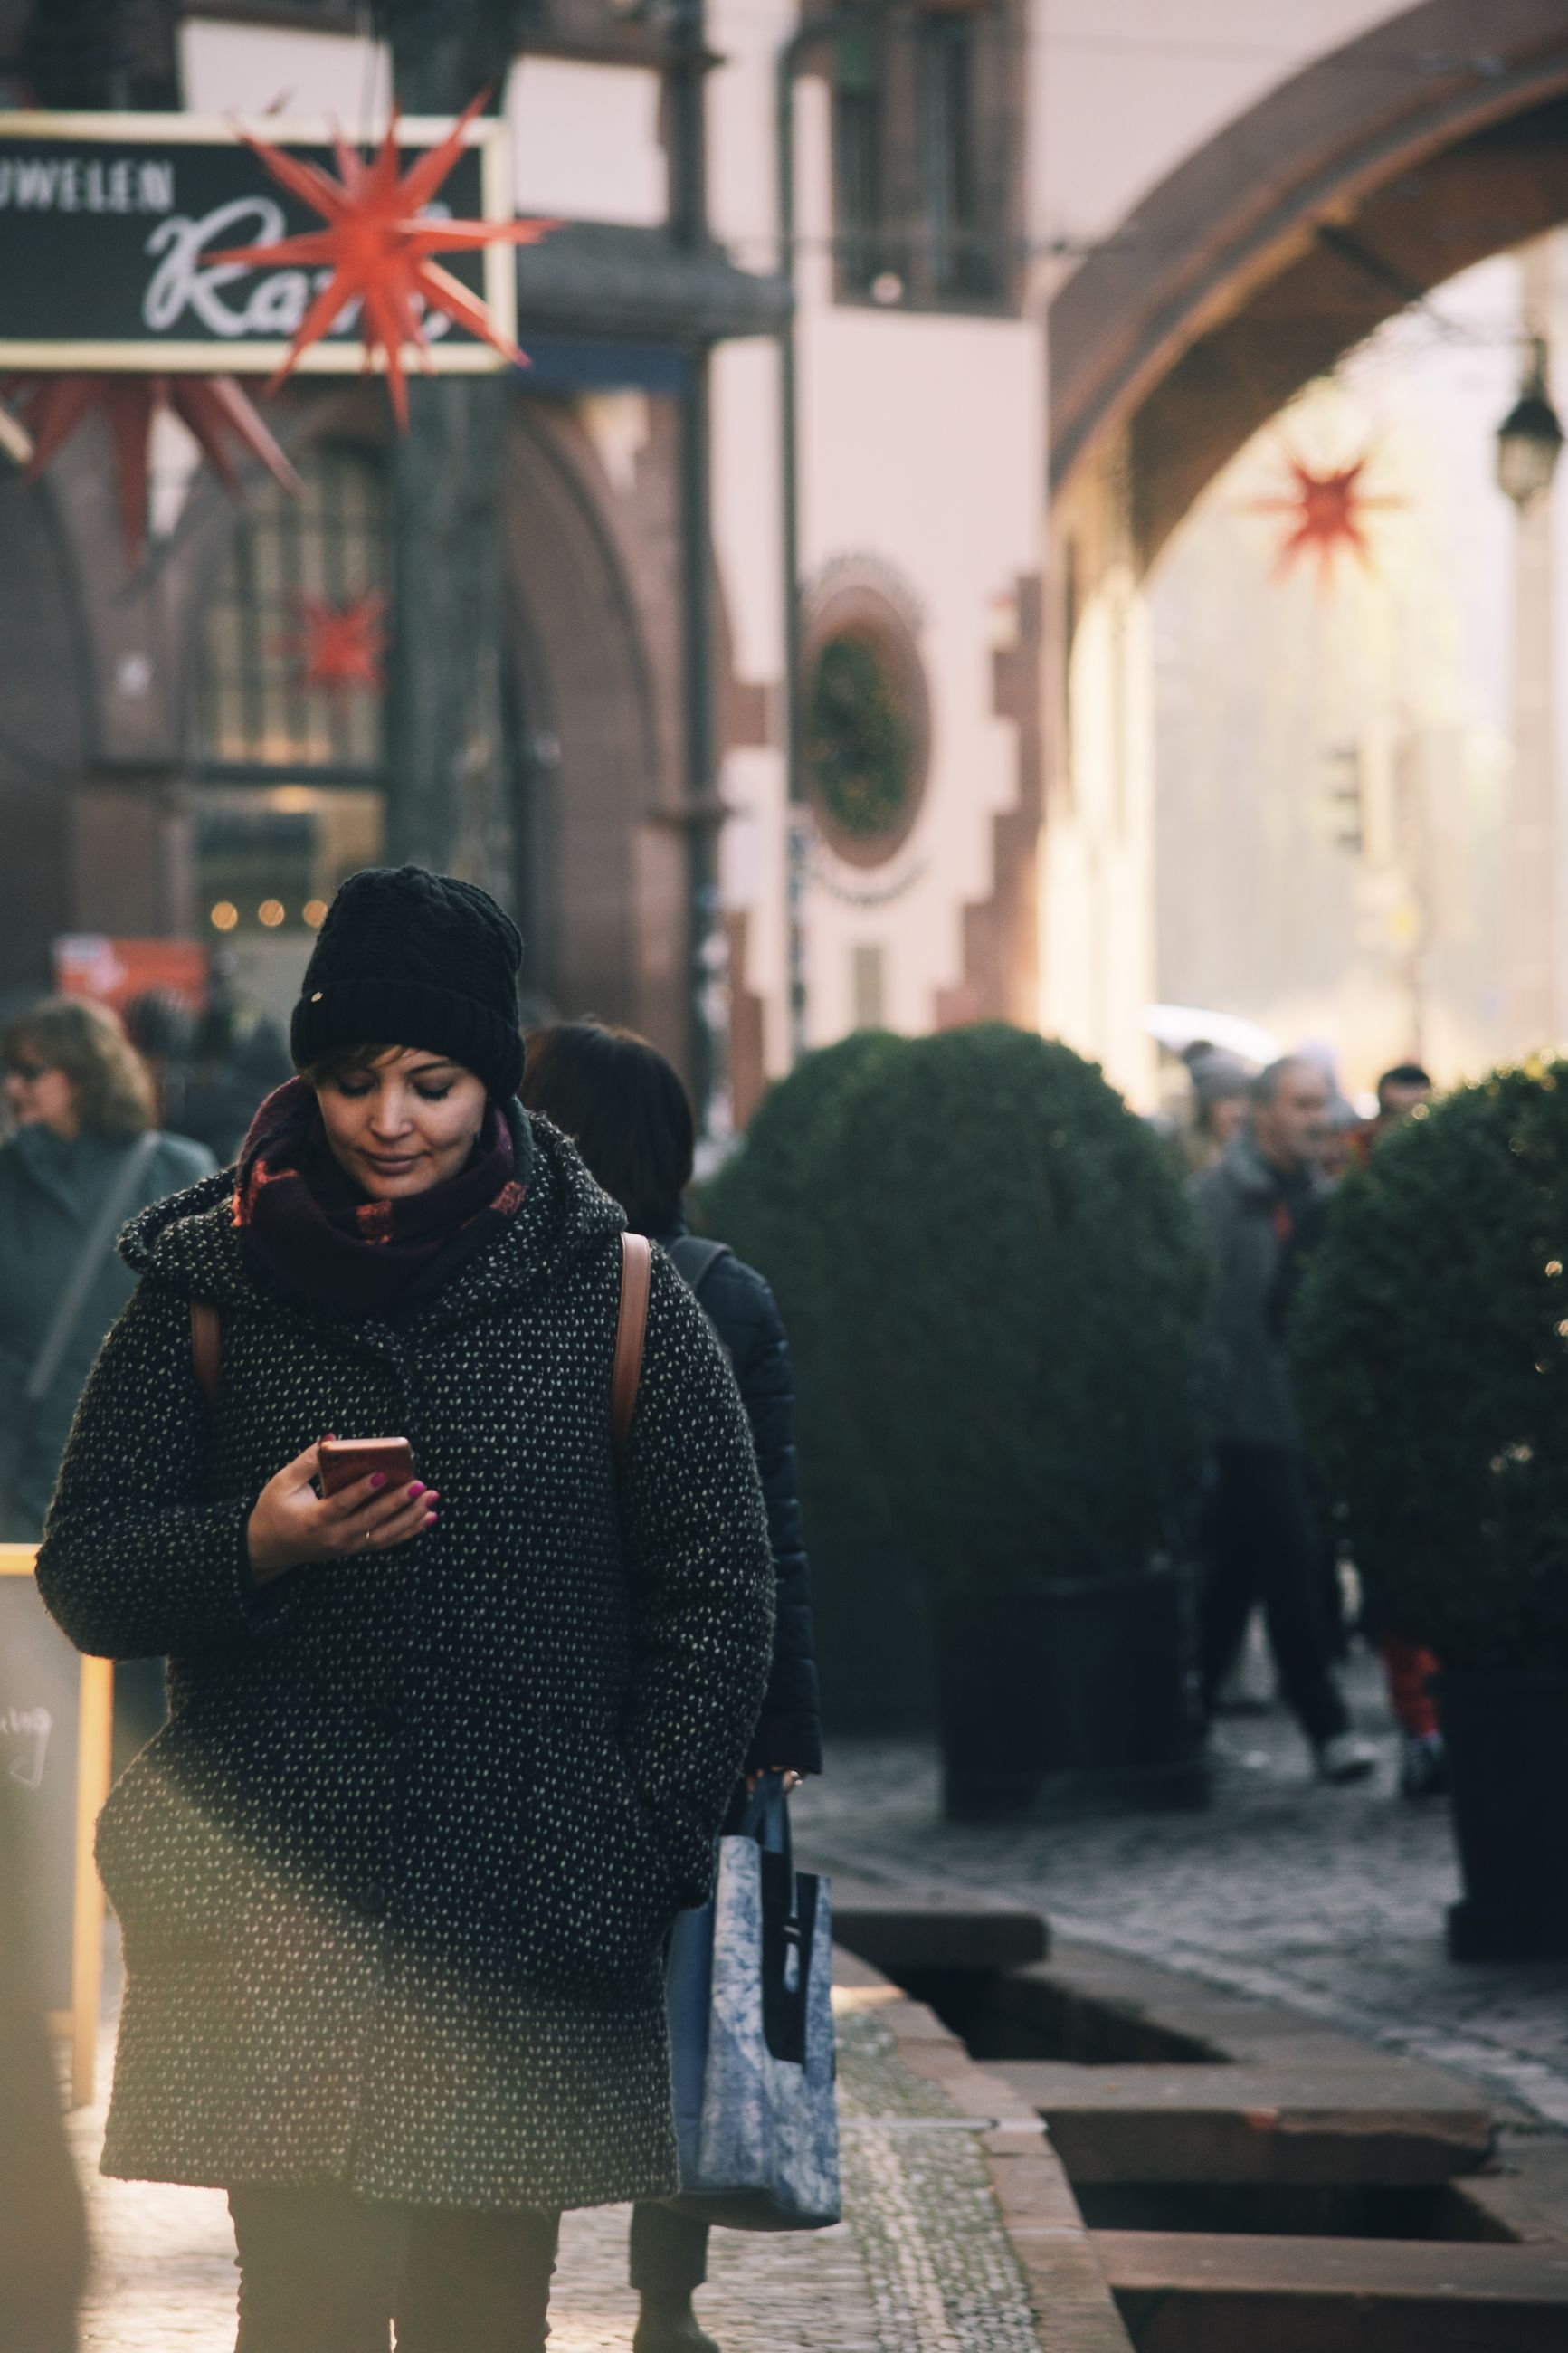 real people, architecture, one person, standing, clothing, young adult, lifestyles, communication, city, building exterior, built structure, women, warm clothing, incidental people, adult, leisure activity, day, technology, focus on foreground, wireless technology, outdoors